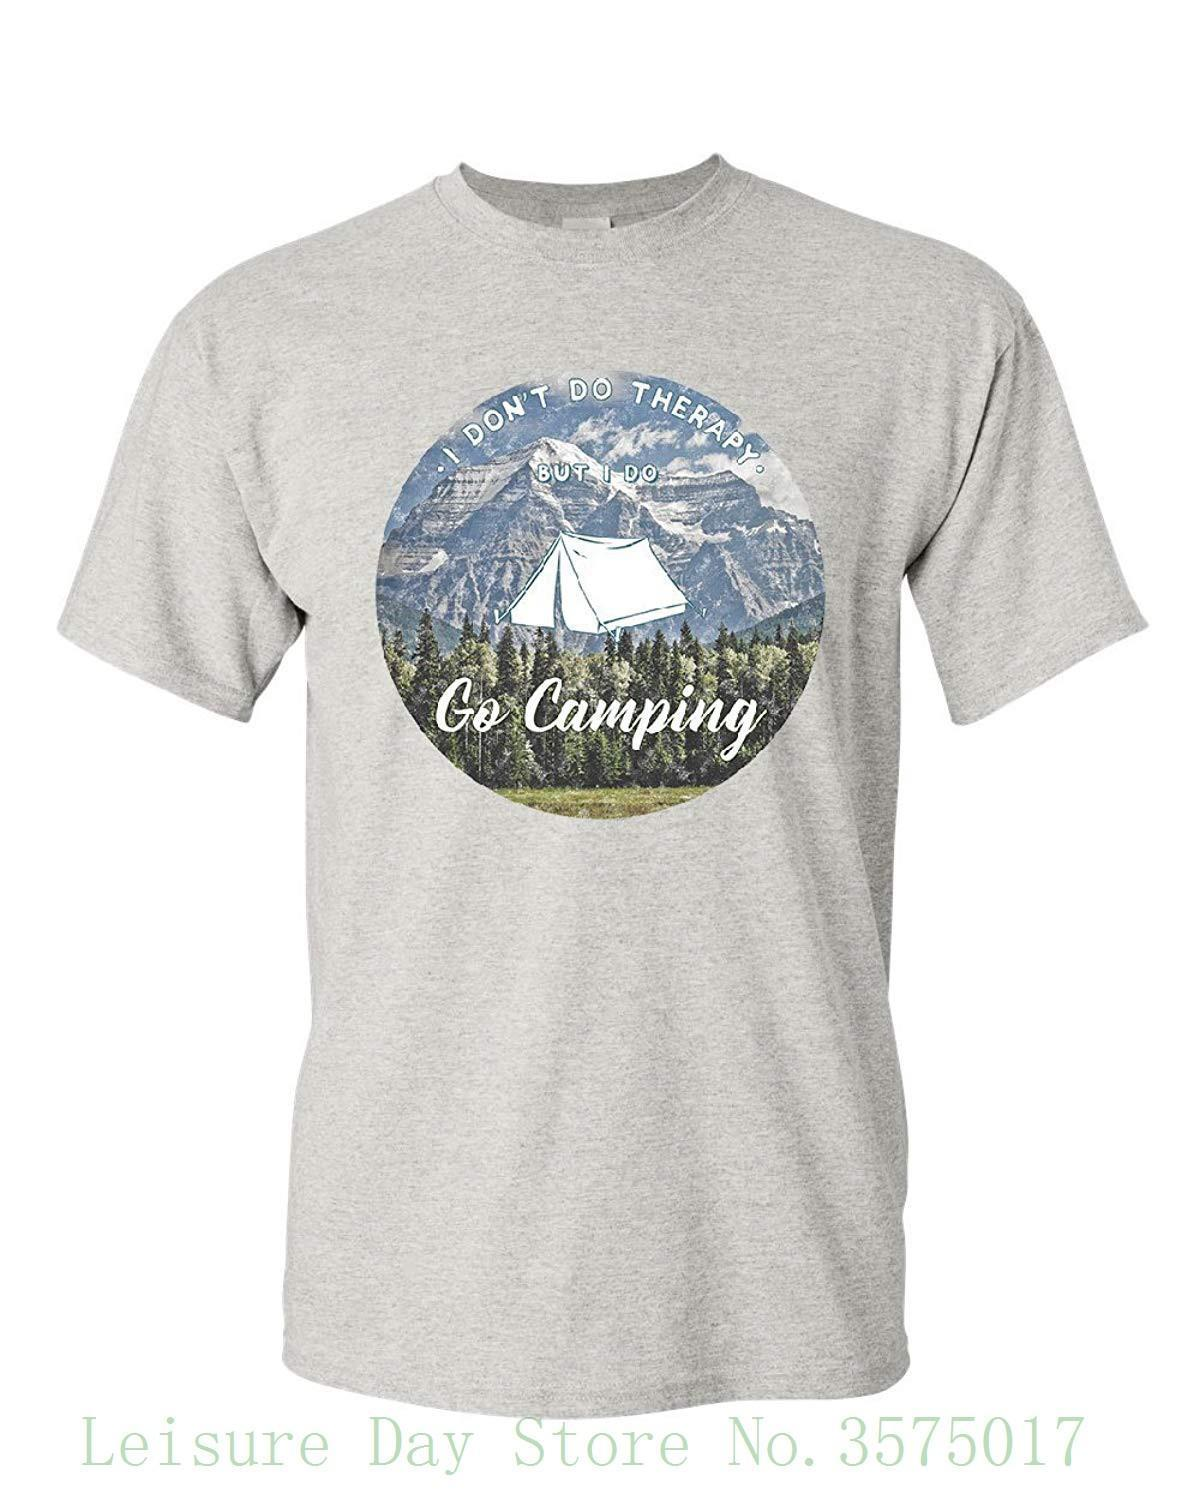 a63539b66 I Go Campings T Shirt Therapy Is Expensive Nature Wildlife Travel Mens Tee  Shirt Short Sleeve Funny Design Rude T Shirts Shirt Online From Lijian56,  ...